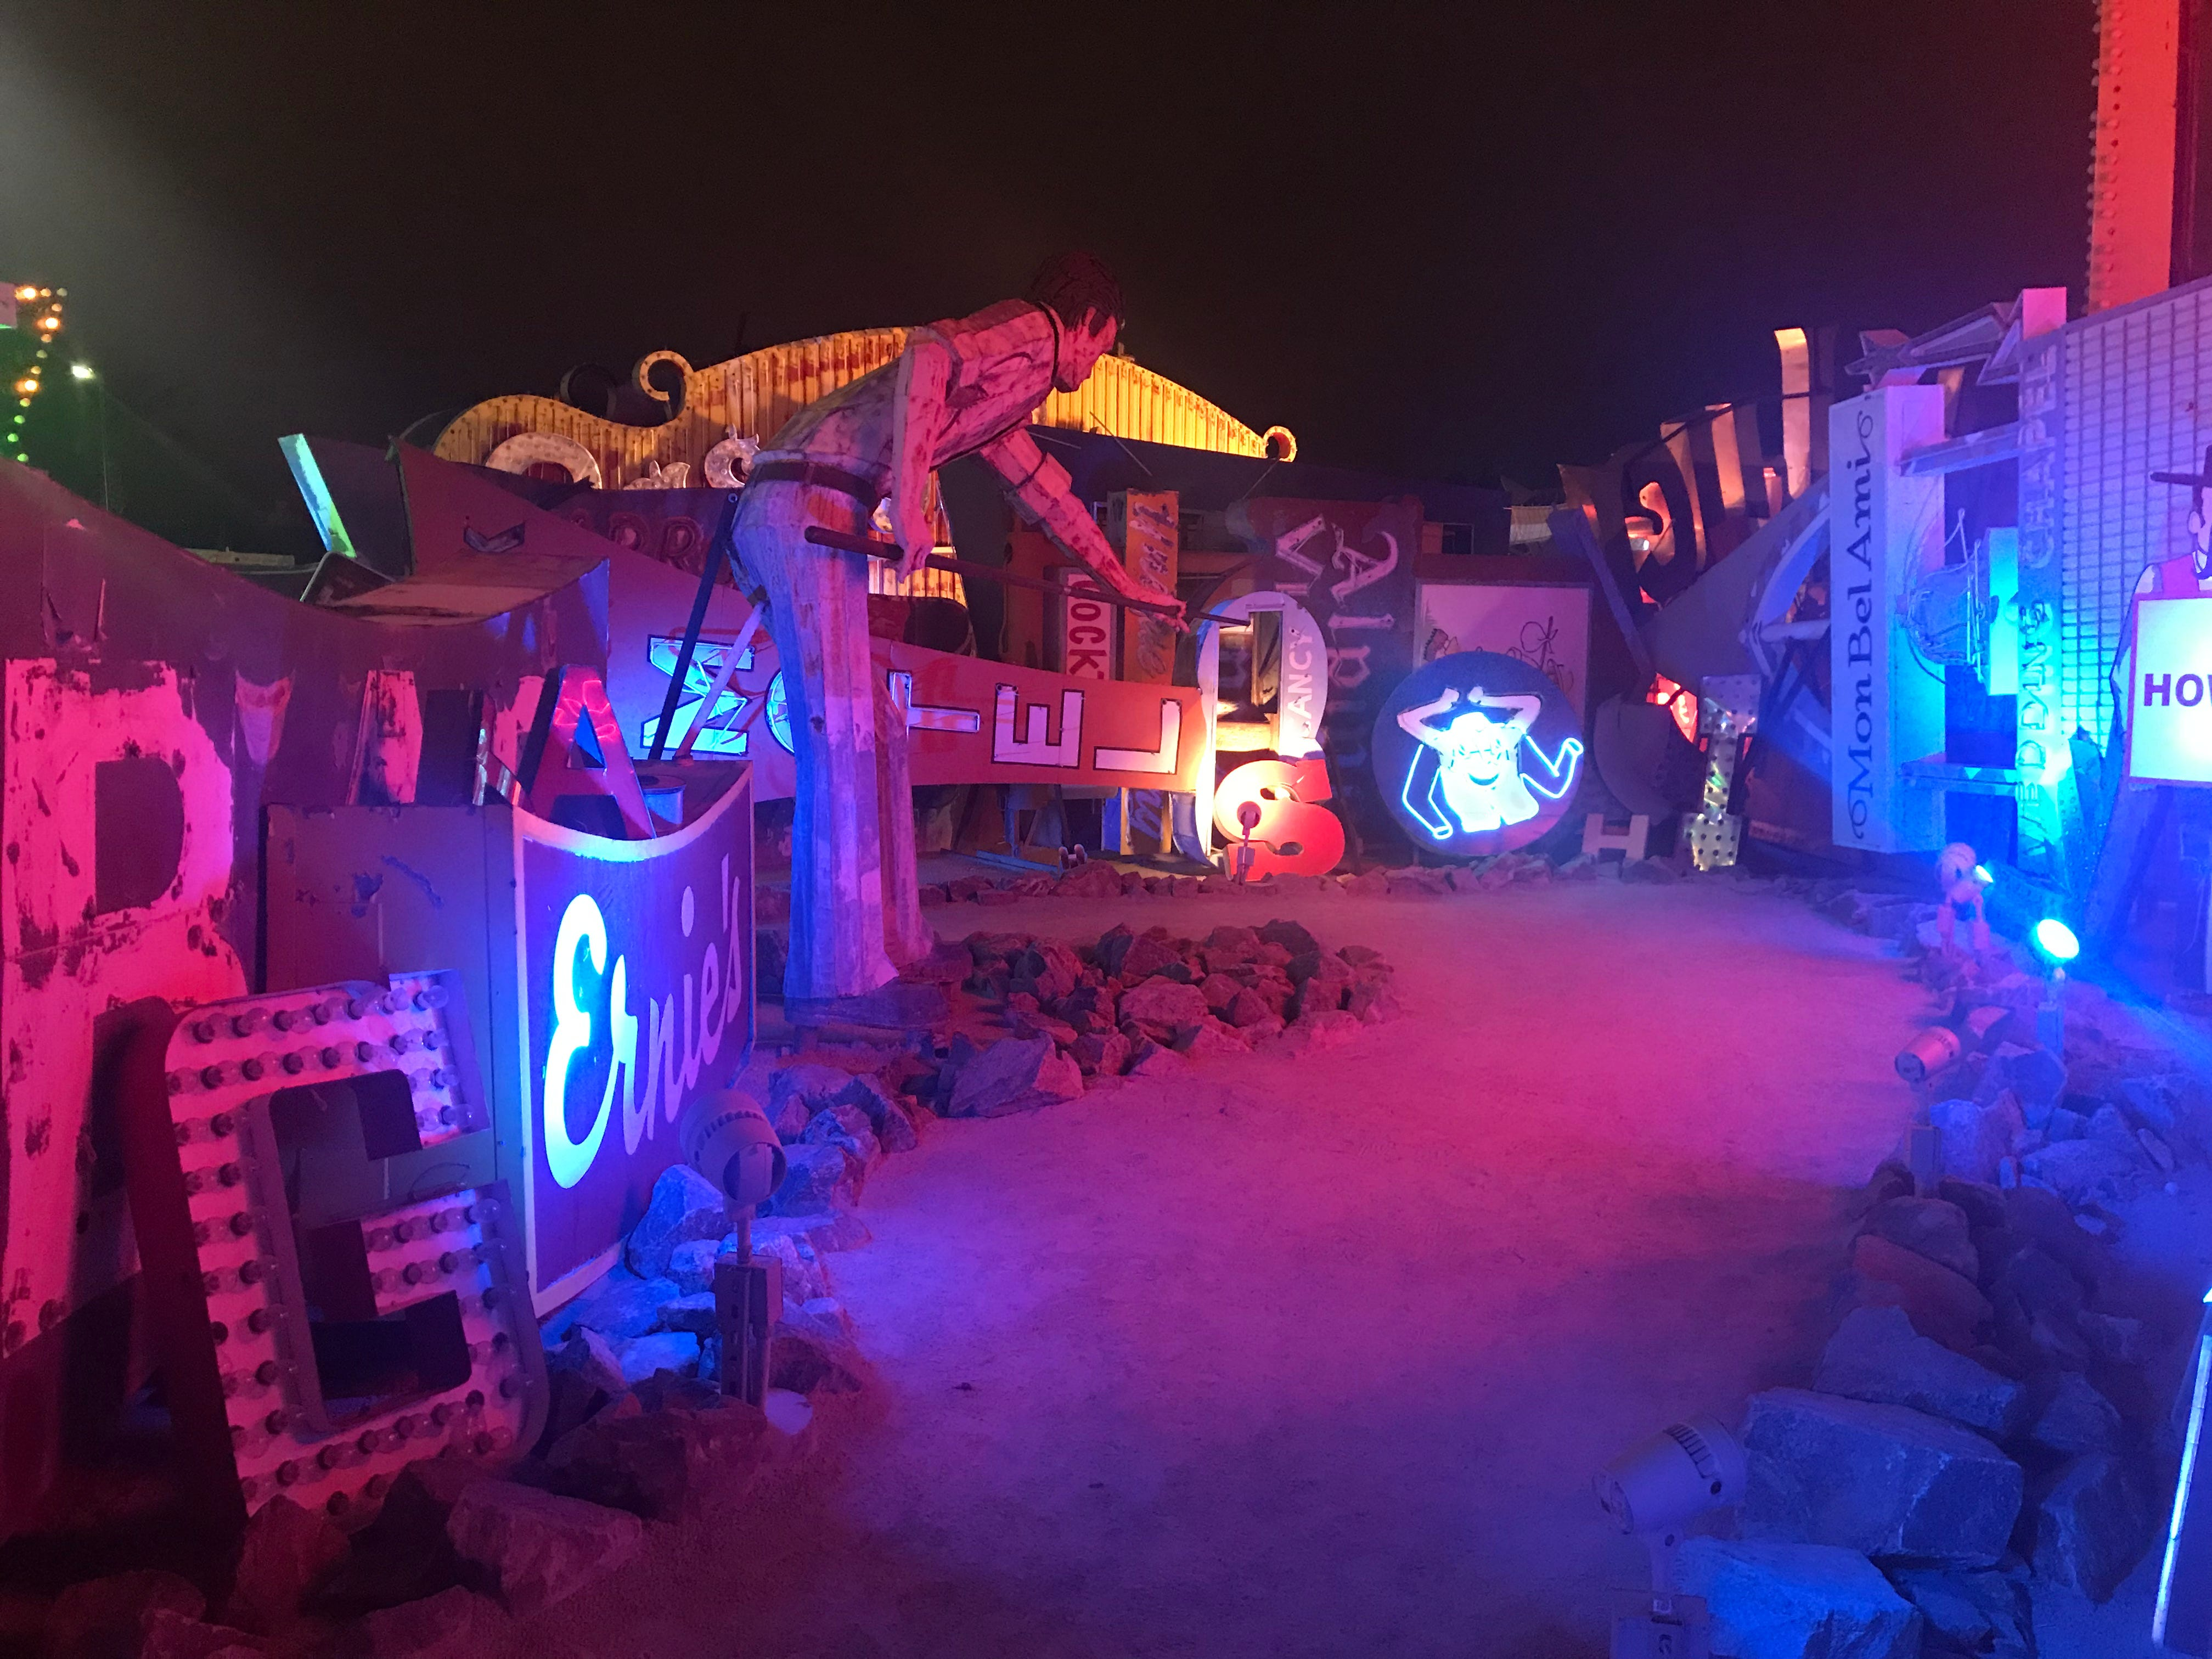 The Neon Museum at night. Tours are offered.